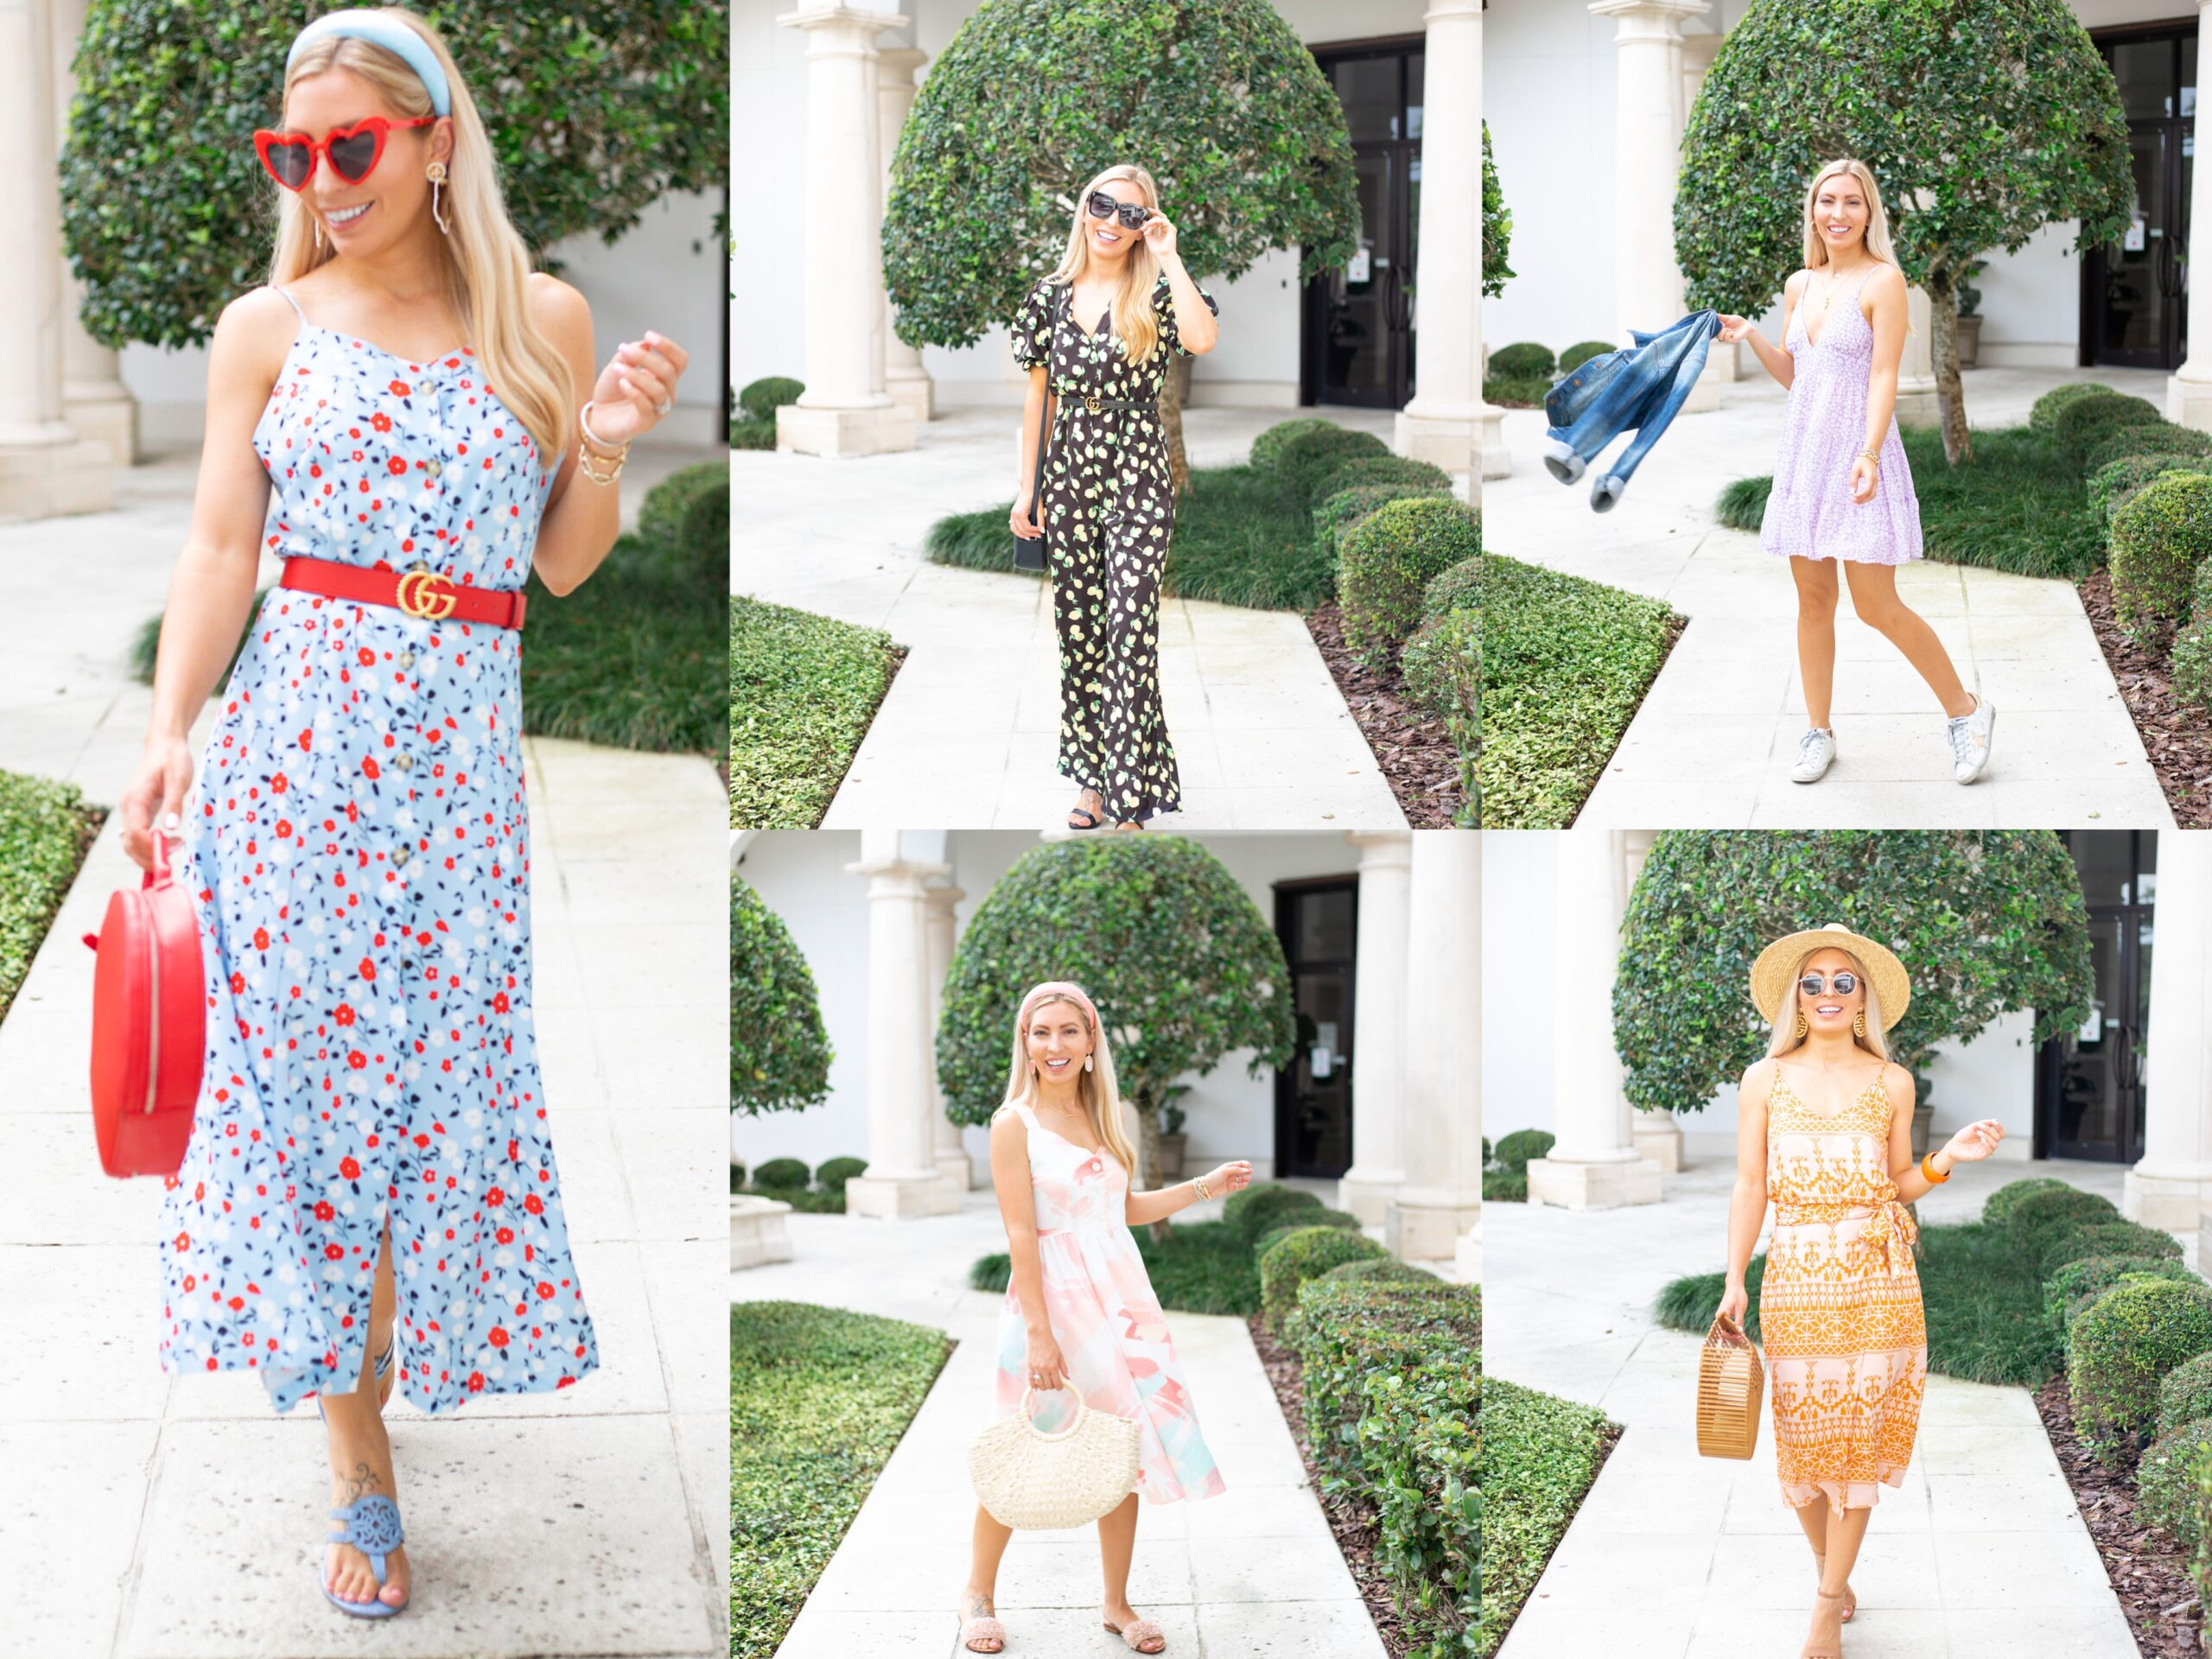 SUMMER OUTFITS UNDER $15